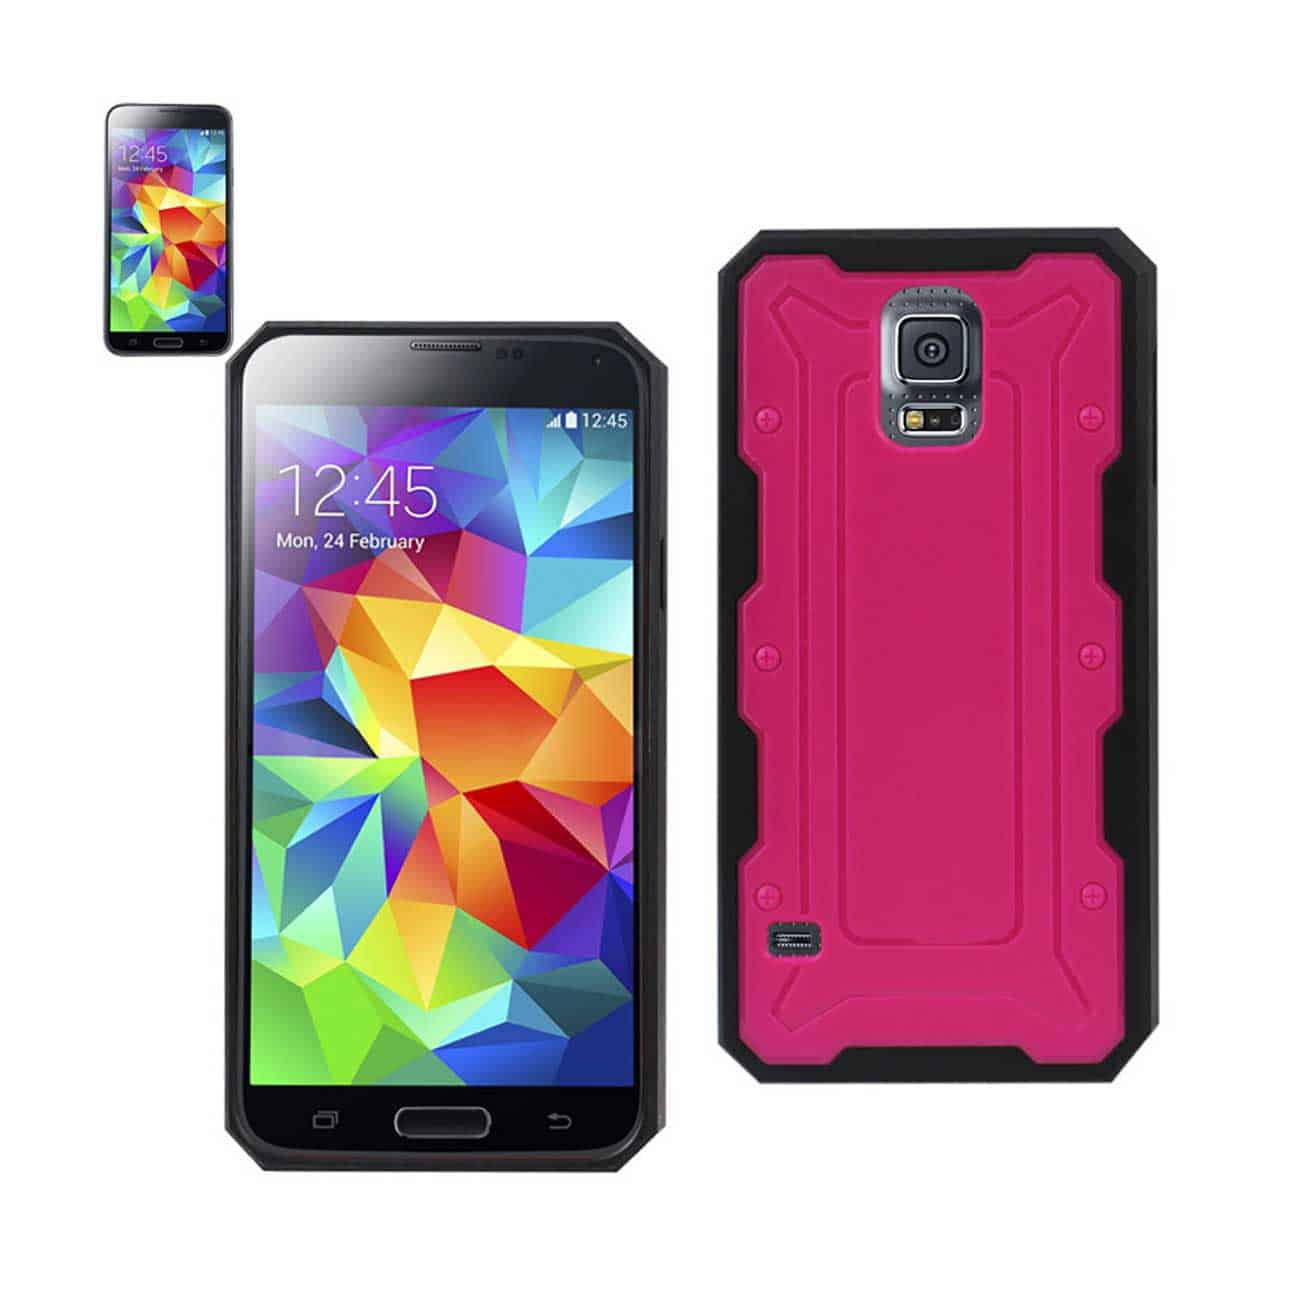 SAMSUNG GALAXY S5 DUAL COLOR TRANSFORMER CASE IN HOT PINK BLACK